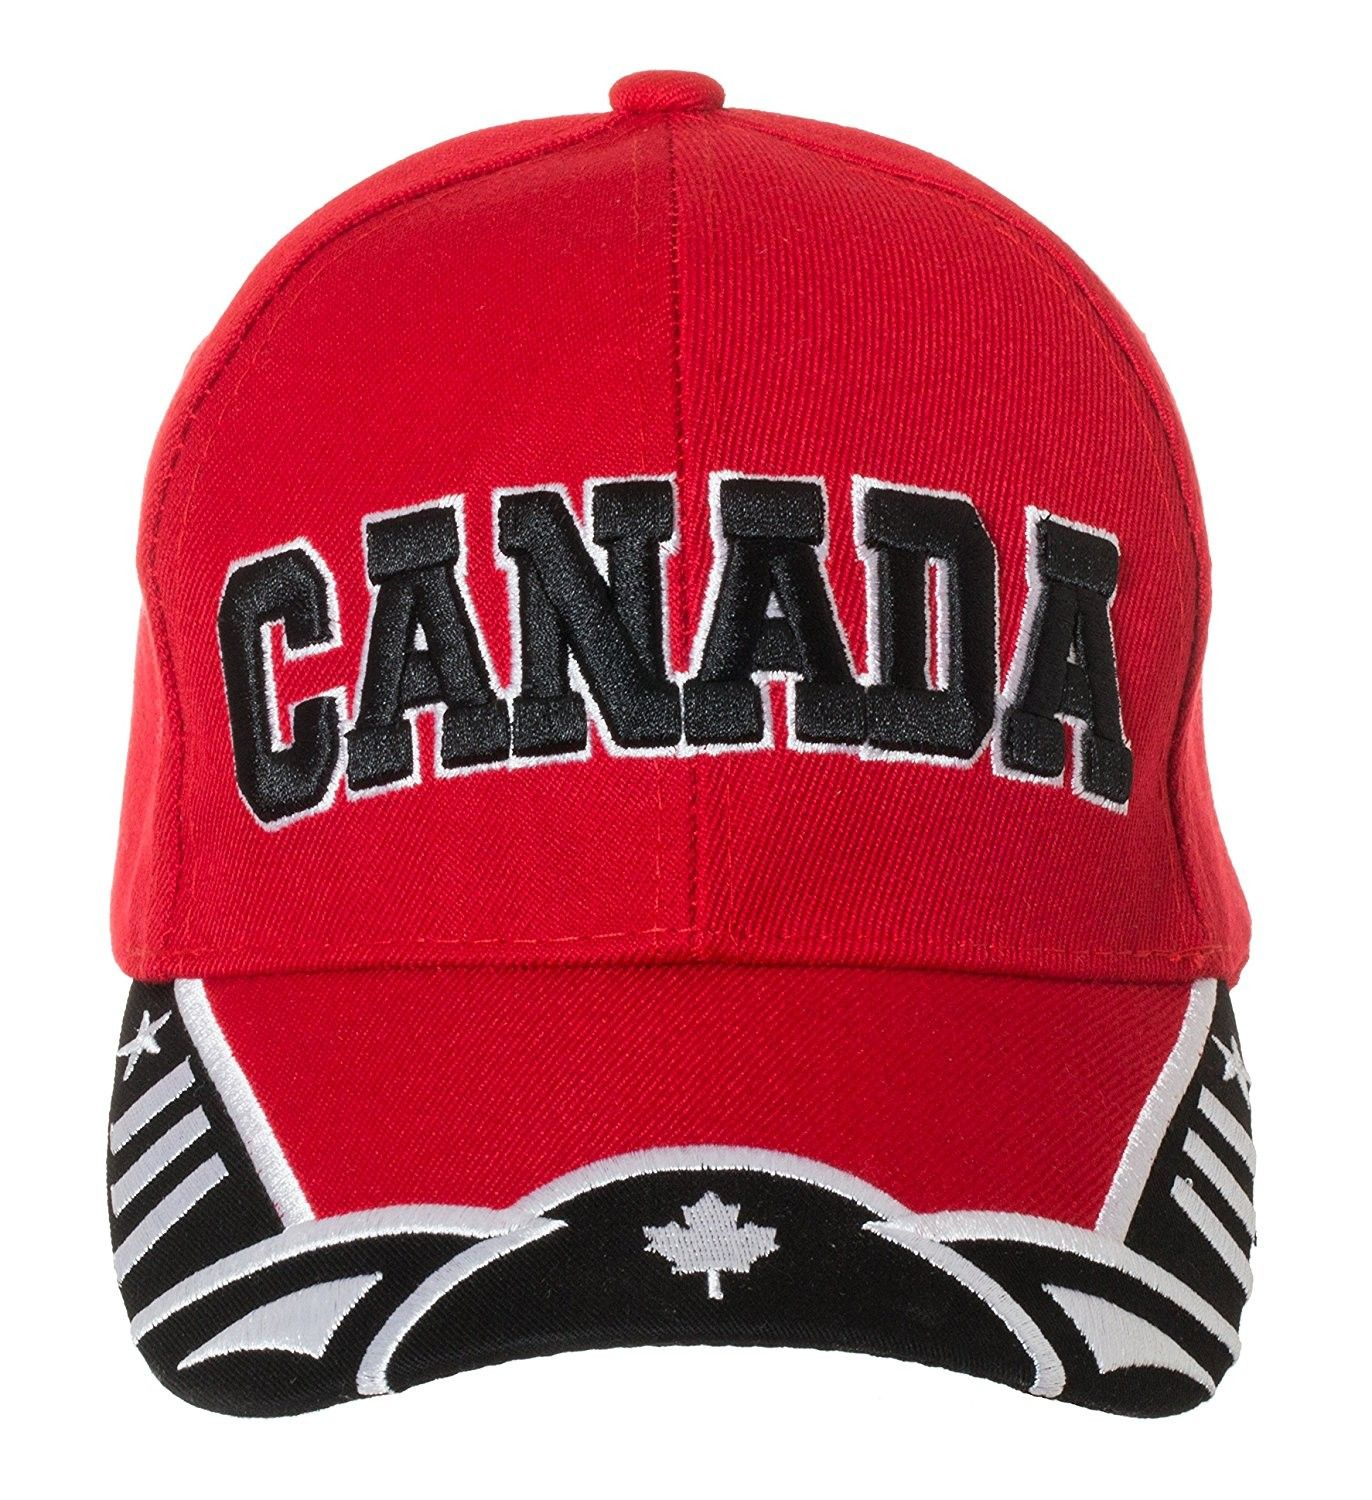 9fd20c9b5a5 Canada Red and White National Pride Hat - 100% Acrylic Embroidered ...